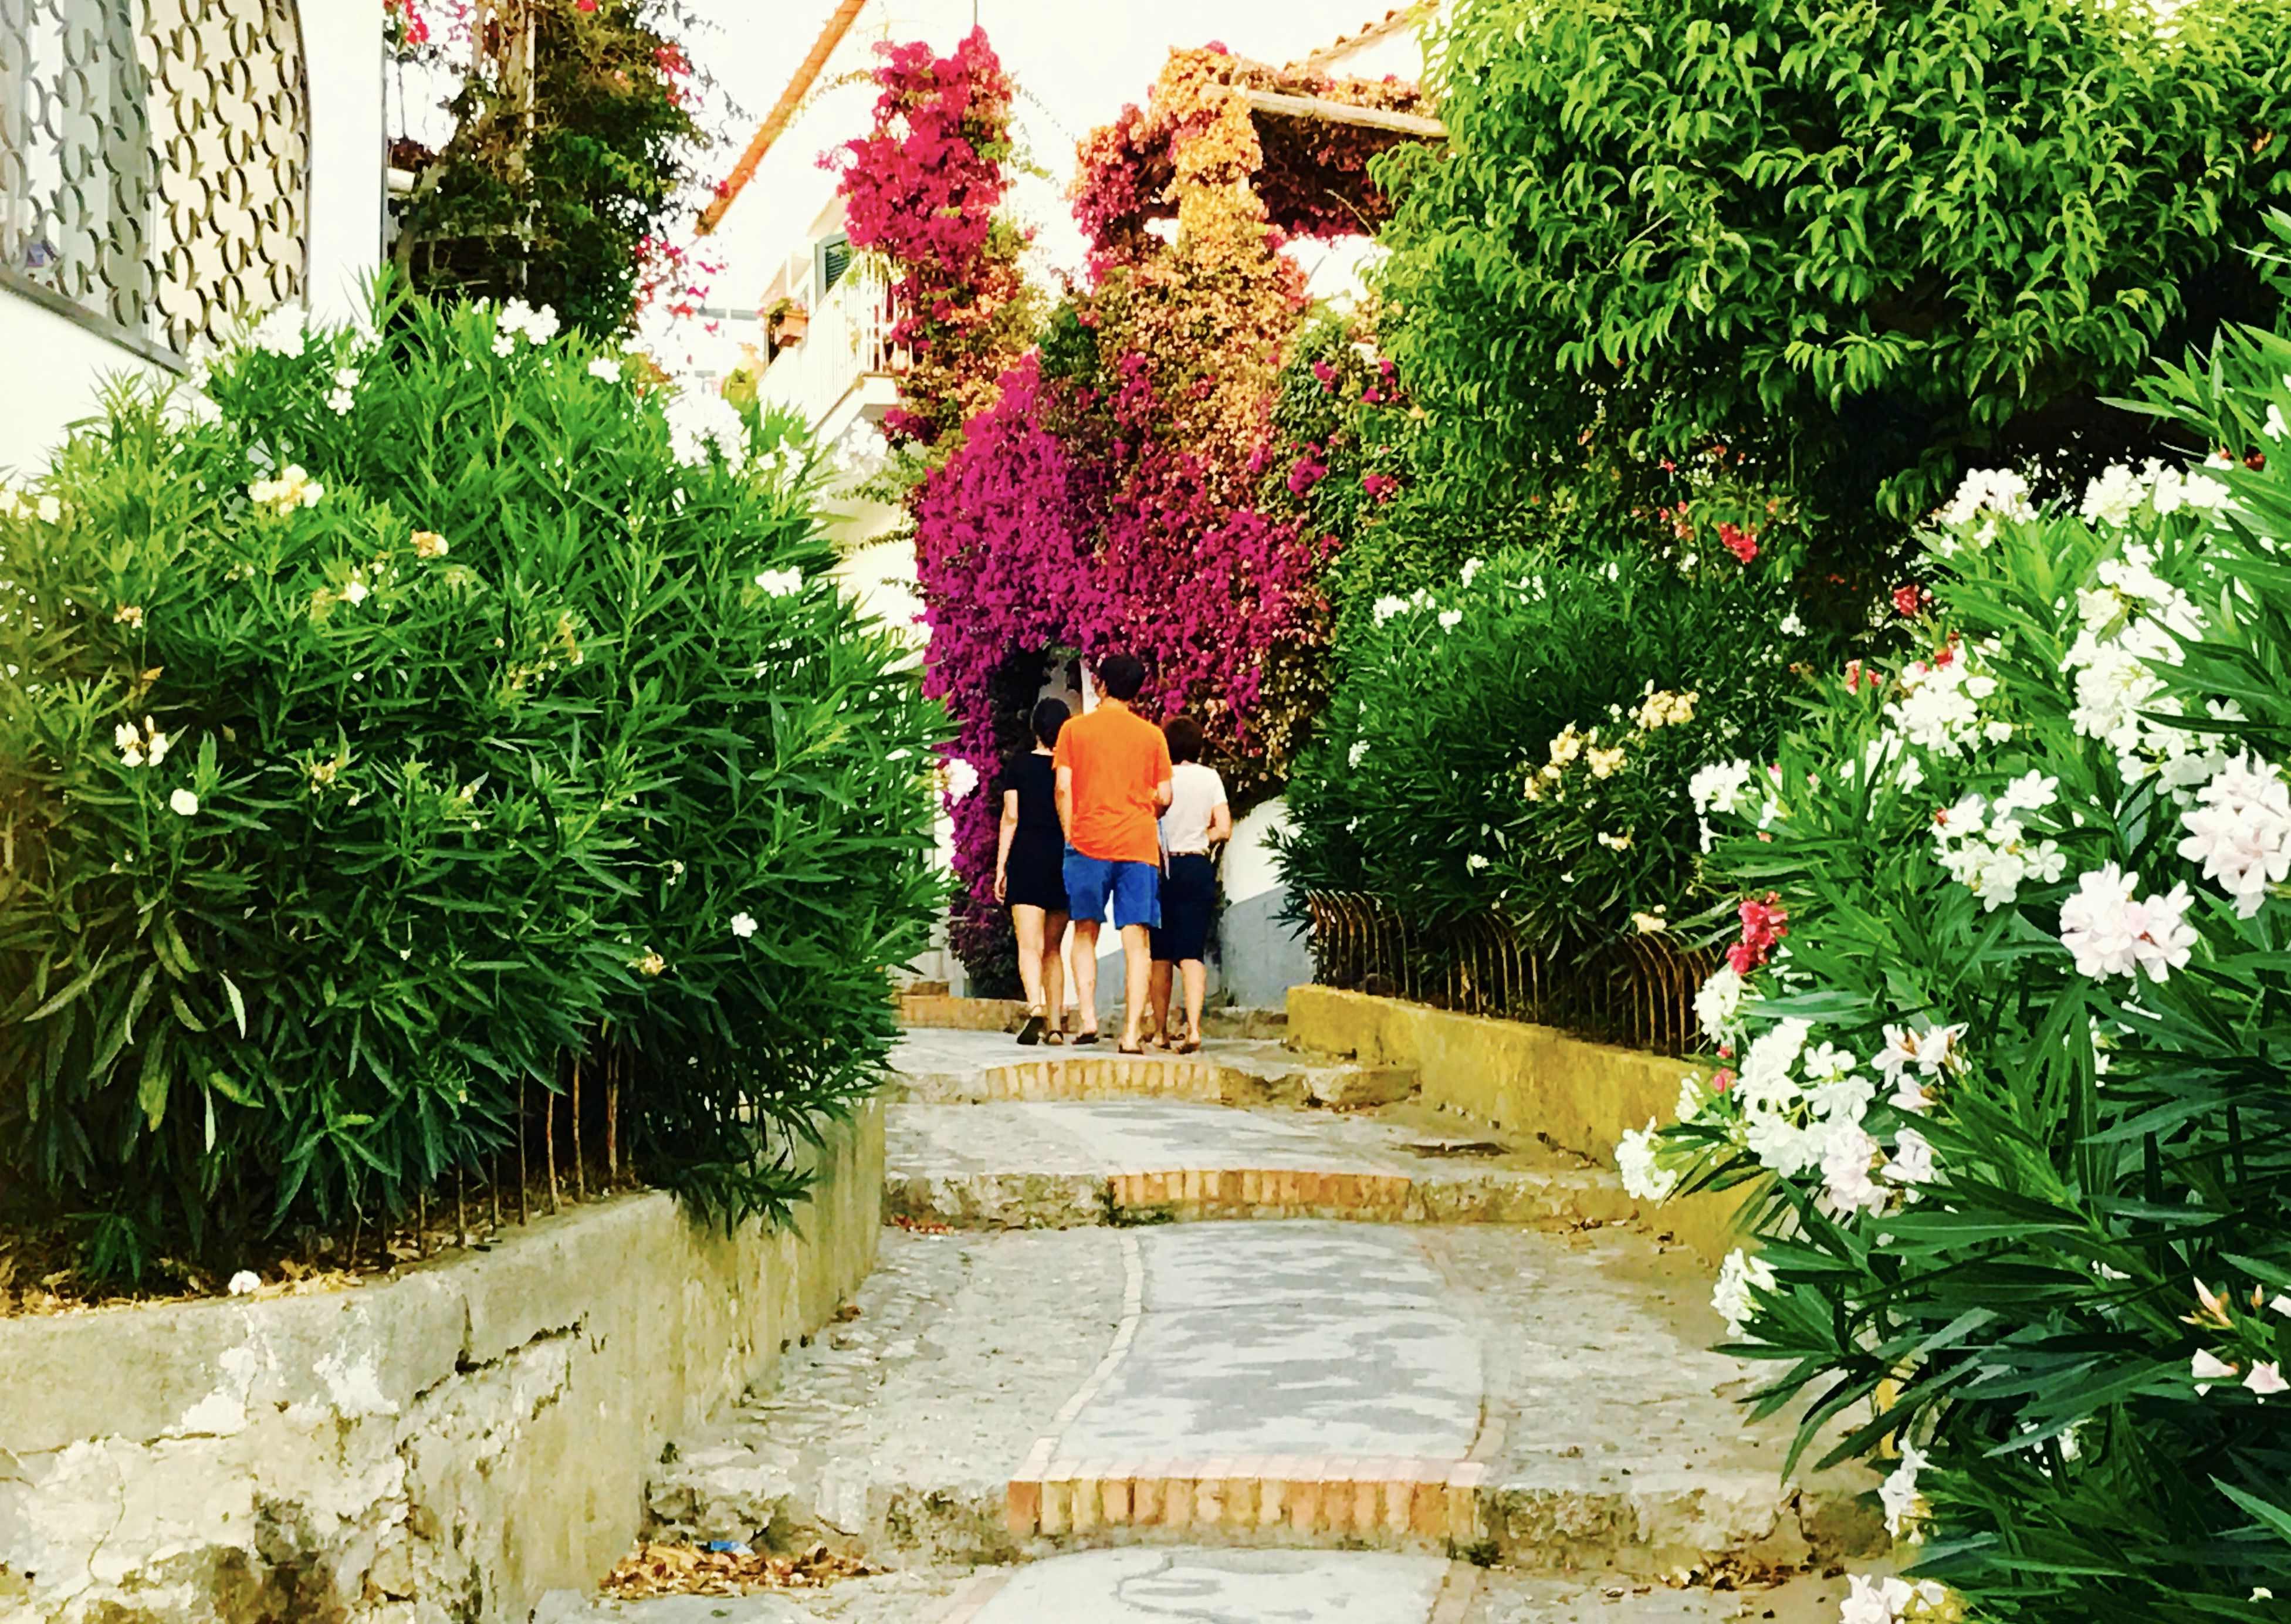 A stroll around Anacapri, stage 2. That's what you get as you step outside cozy hotel Senaria. Flowers and a beautiful light, no matter what the weather's like. Enjoy your tour around picturesque Anacapri town. Visit our blog, www.anacapricity.wordpress.com. Stay tuned!!!